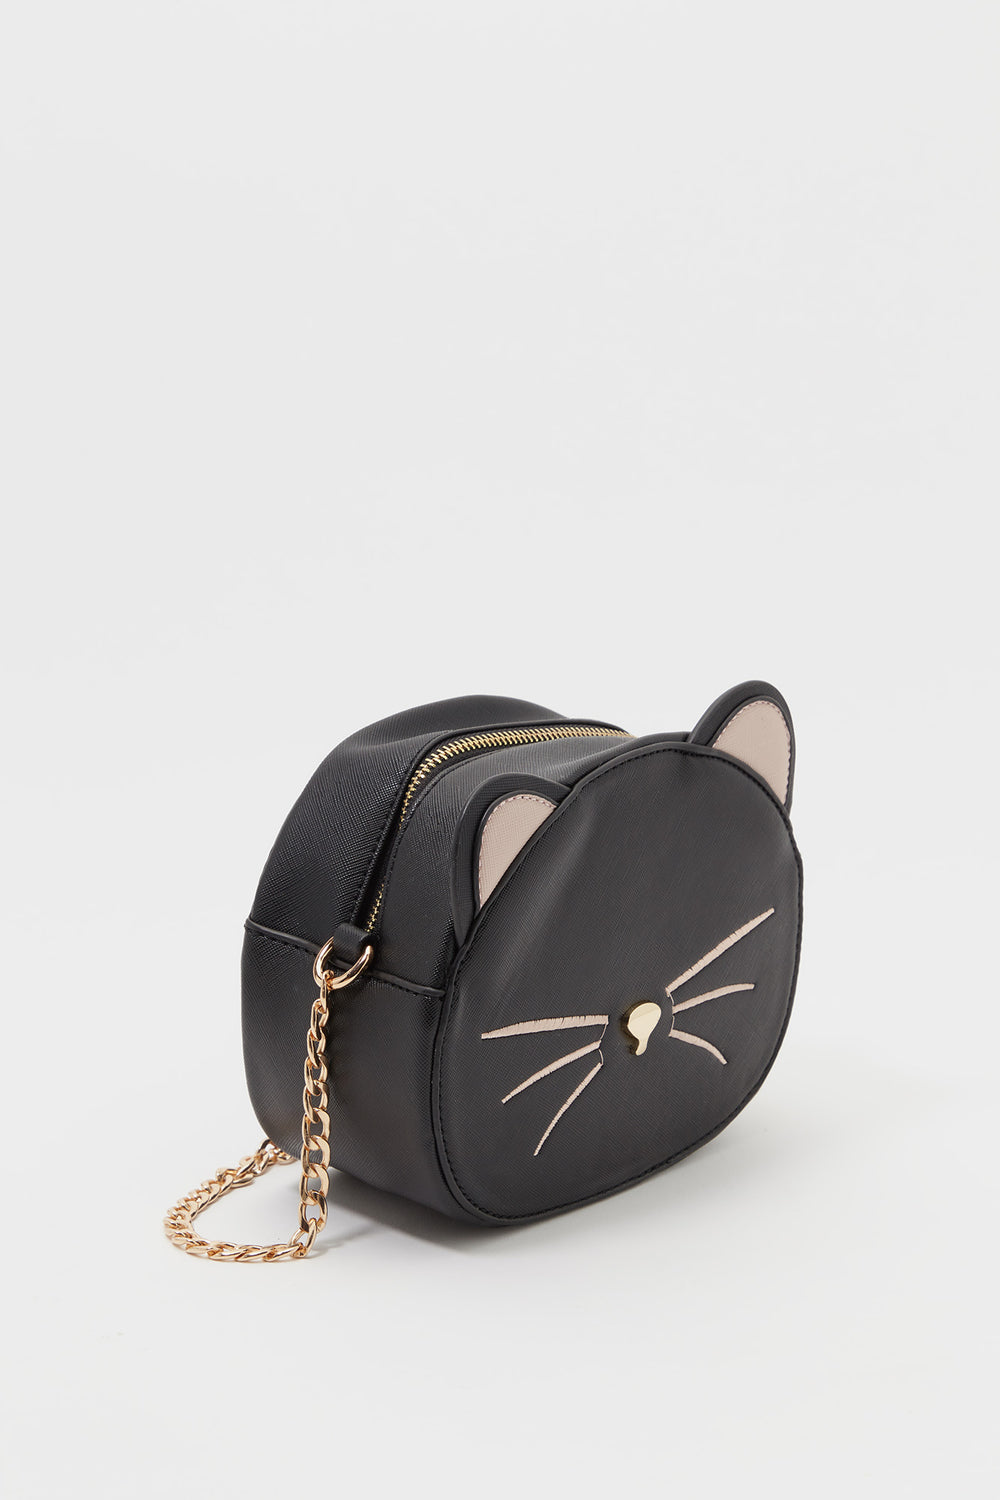 Girls Cat Crossbody Bag Black